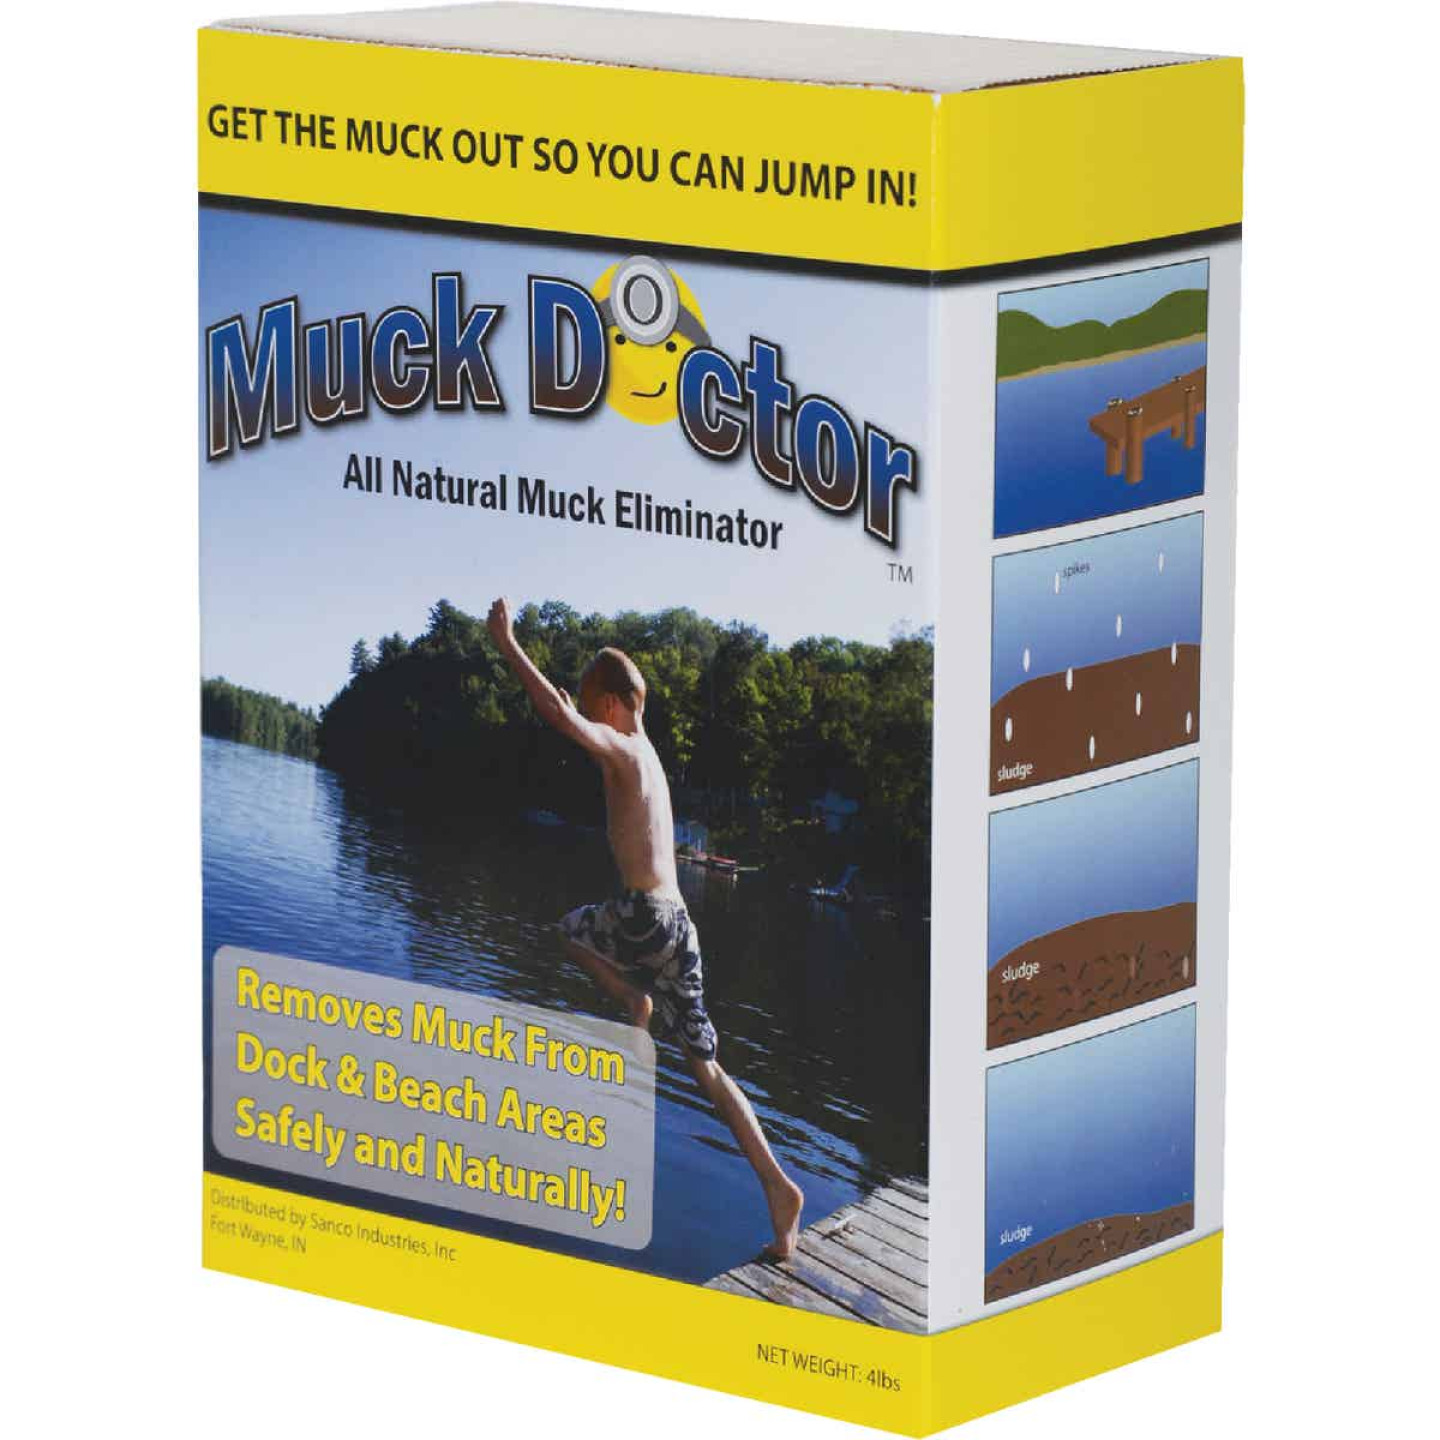 Muck Doctor Water Treatment (10-Pack) Image 3